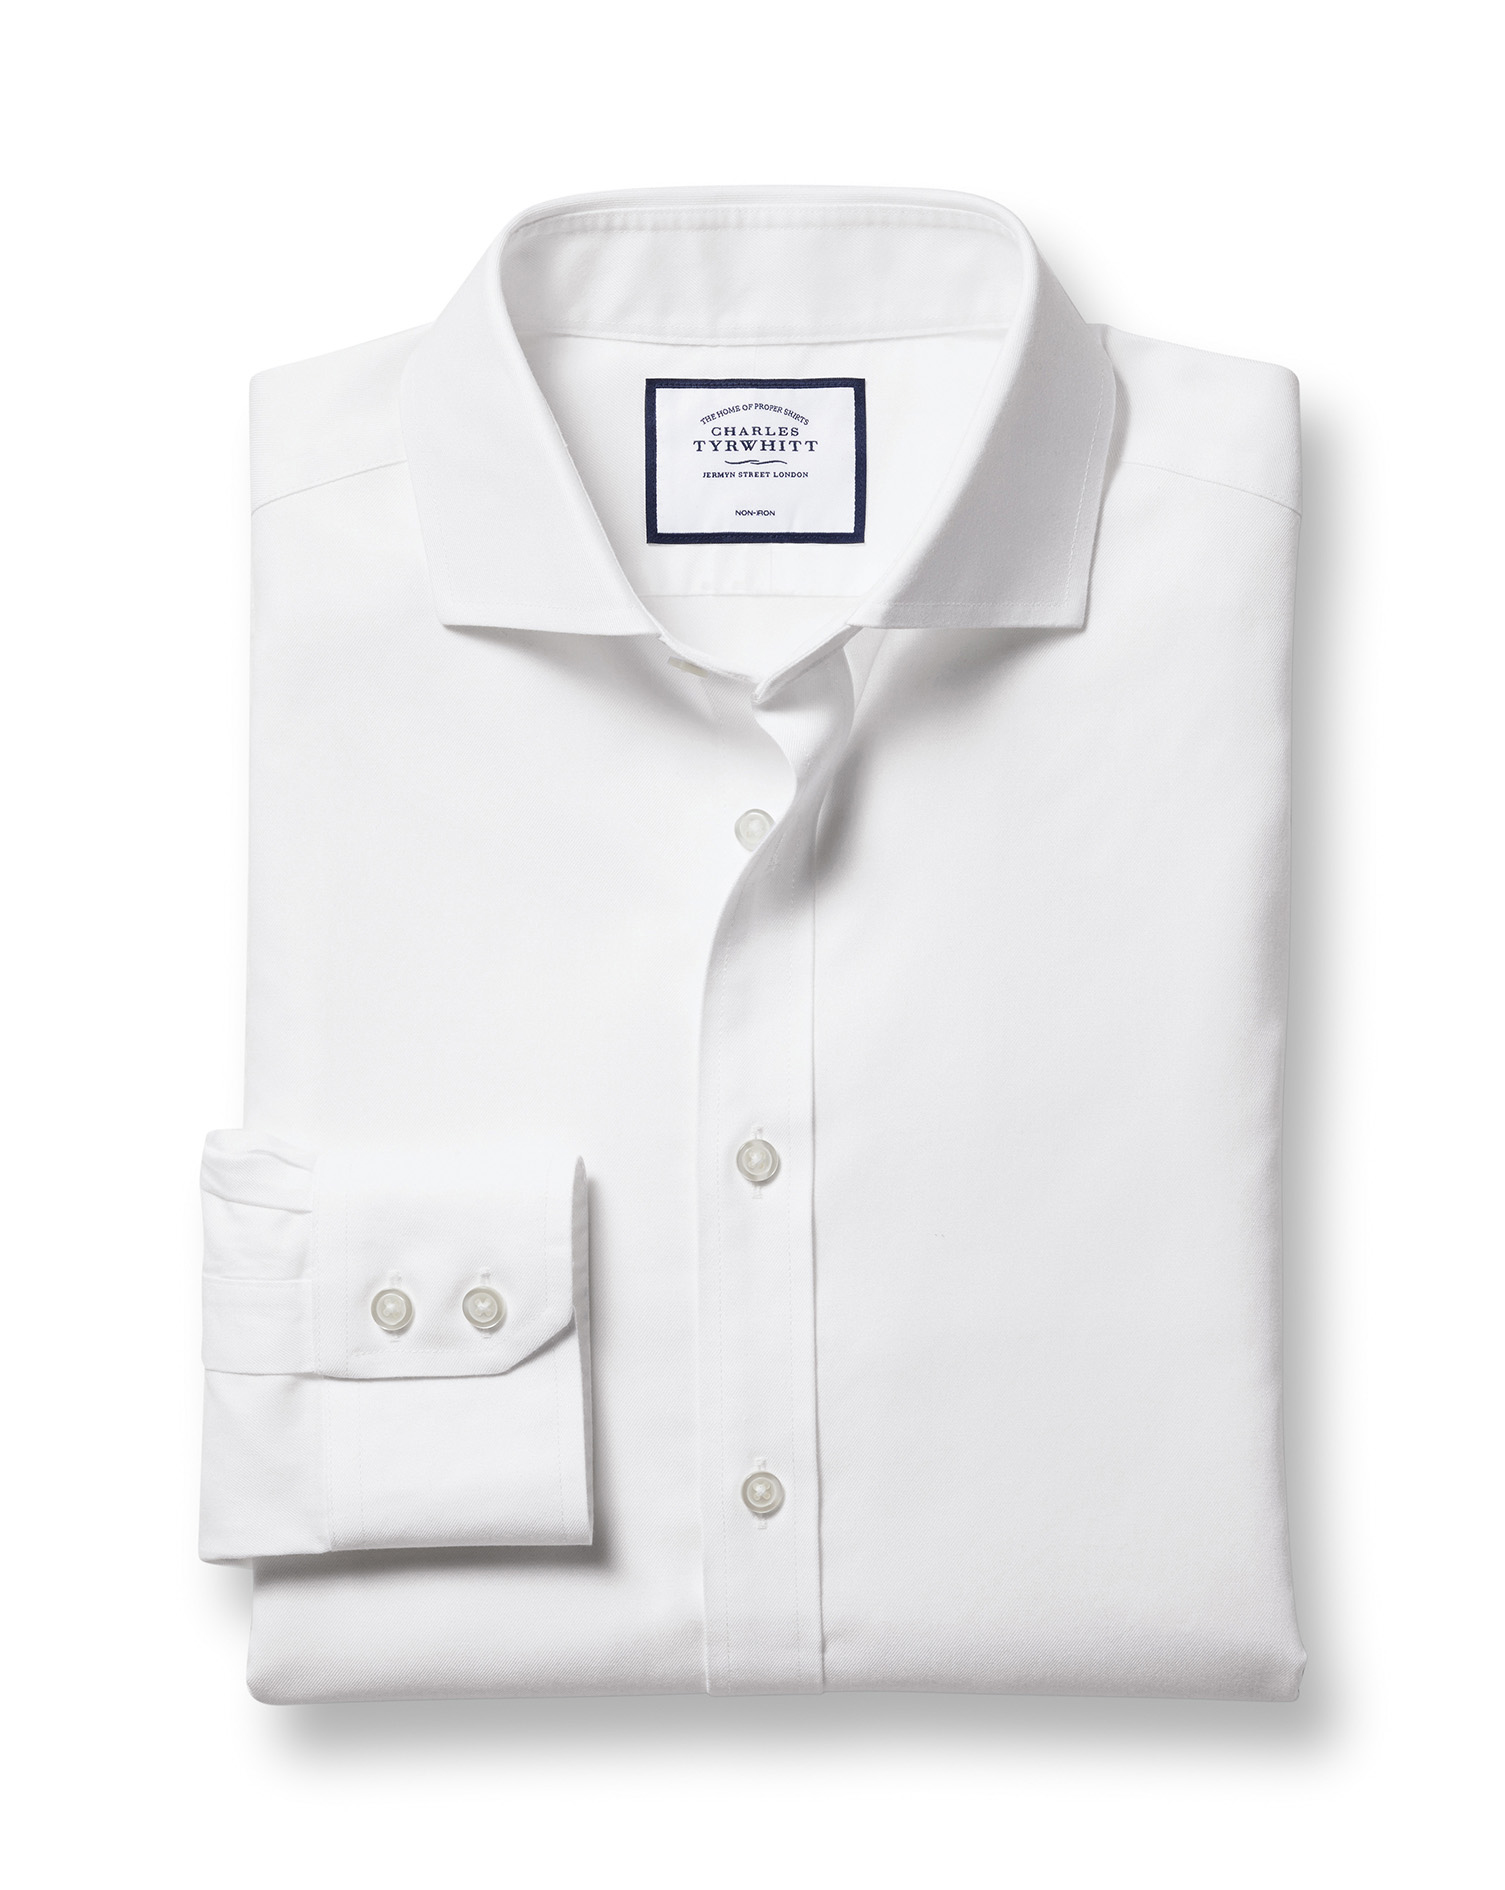 Classic Fit Cutaway Non-Iron Twill White Cotton Formal Shirt Double Cuff Size 17.5/35 by Charles Tyr